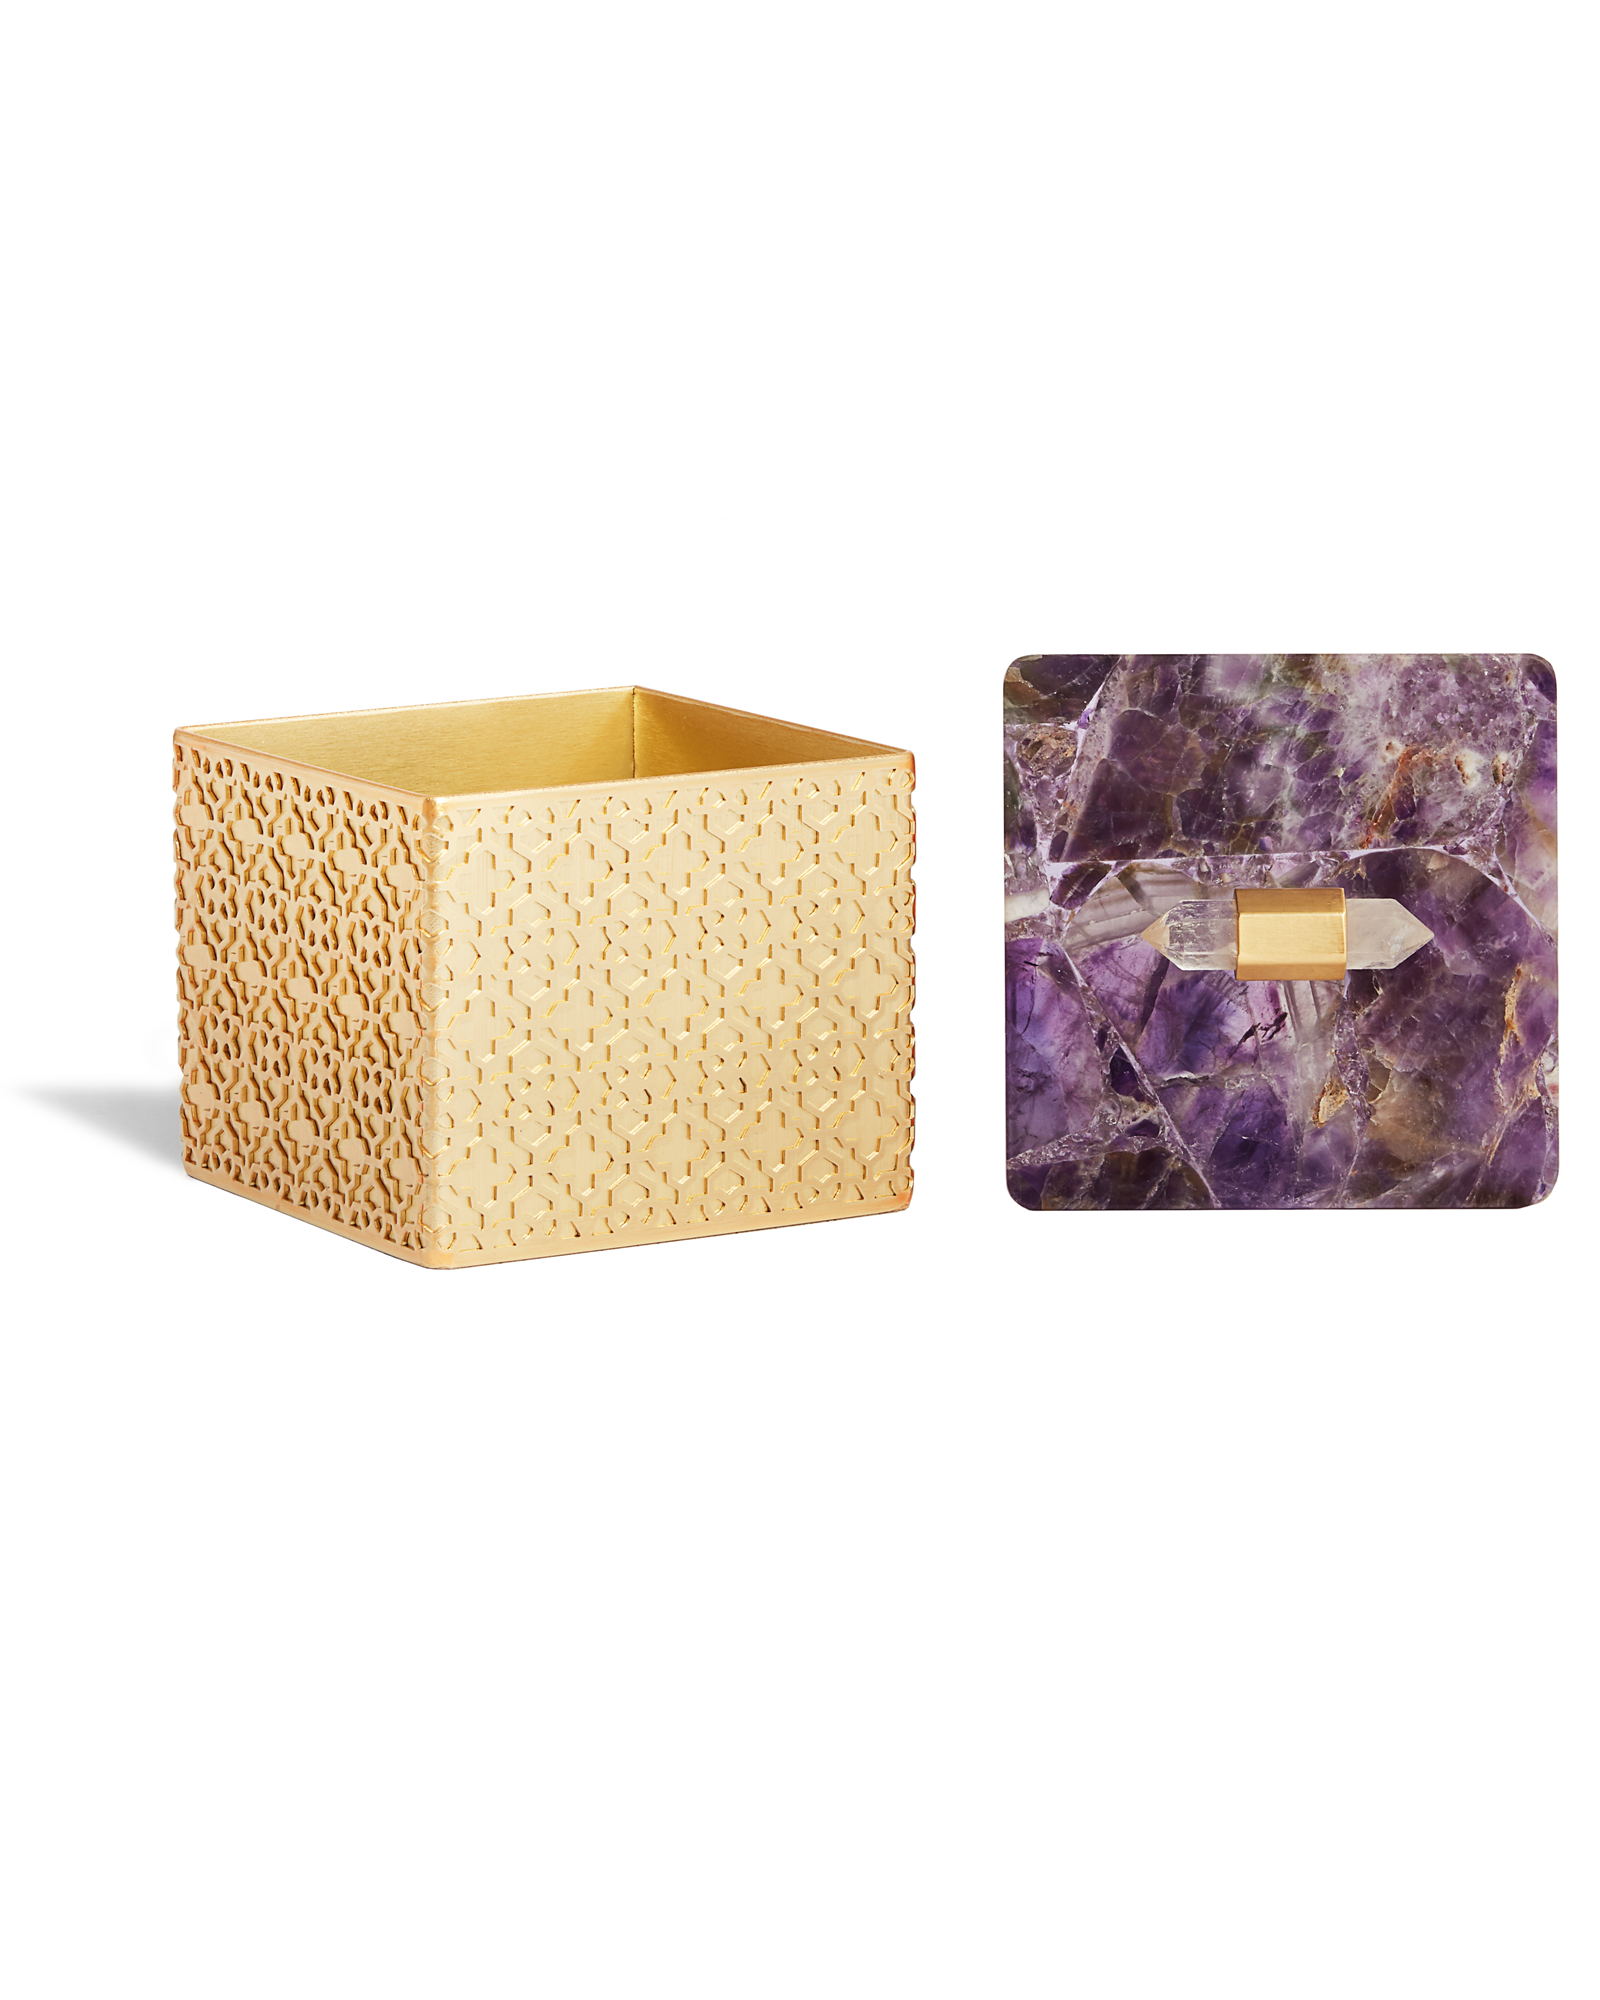 Square Filigree Box in Chevron Amethyst